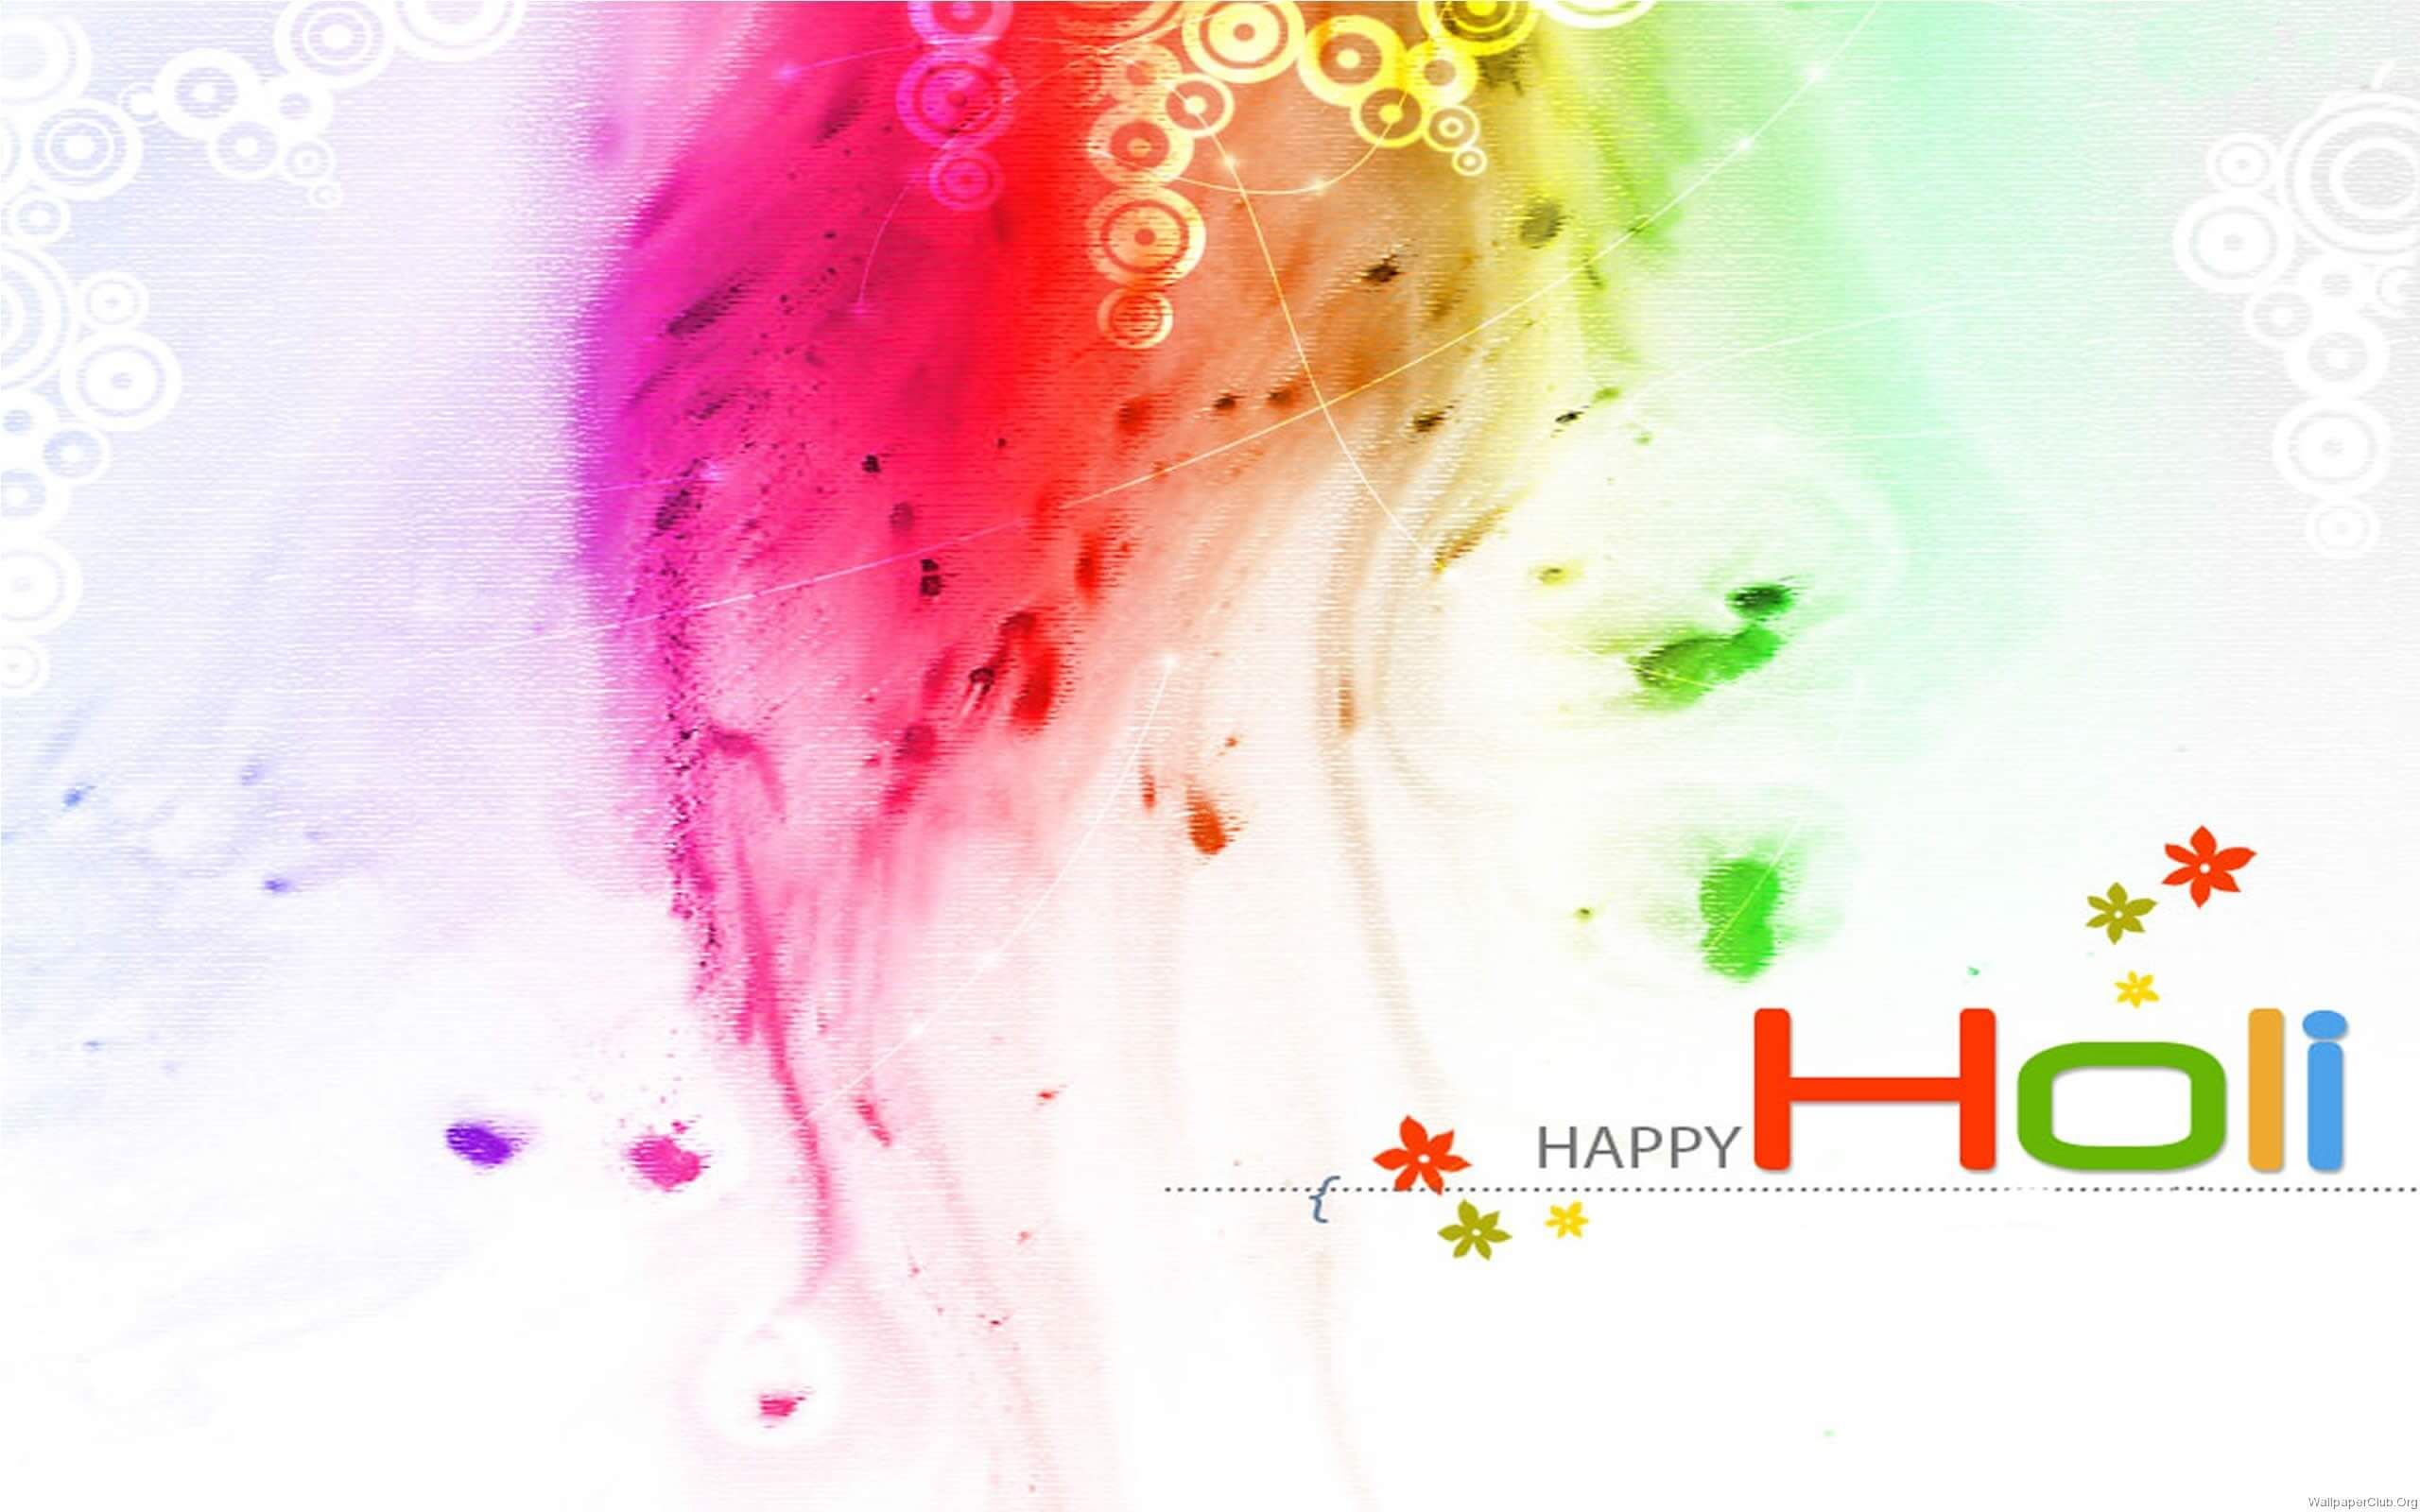 happy holi wallpaper background hd 3d